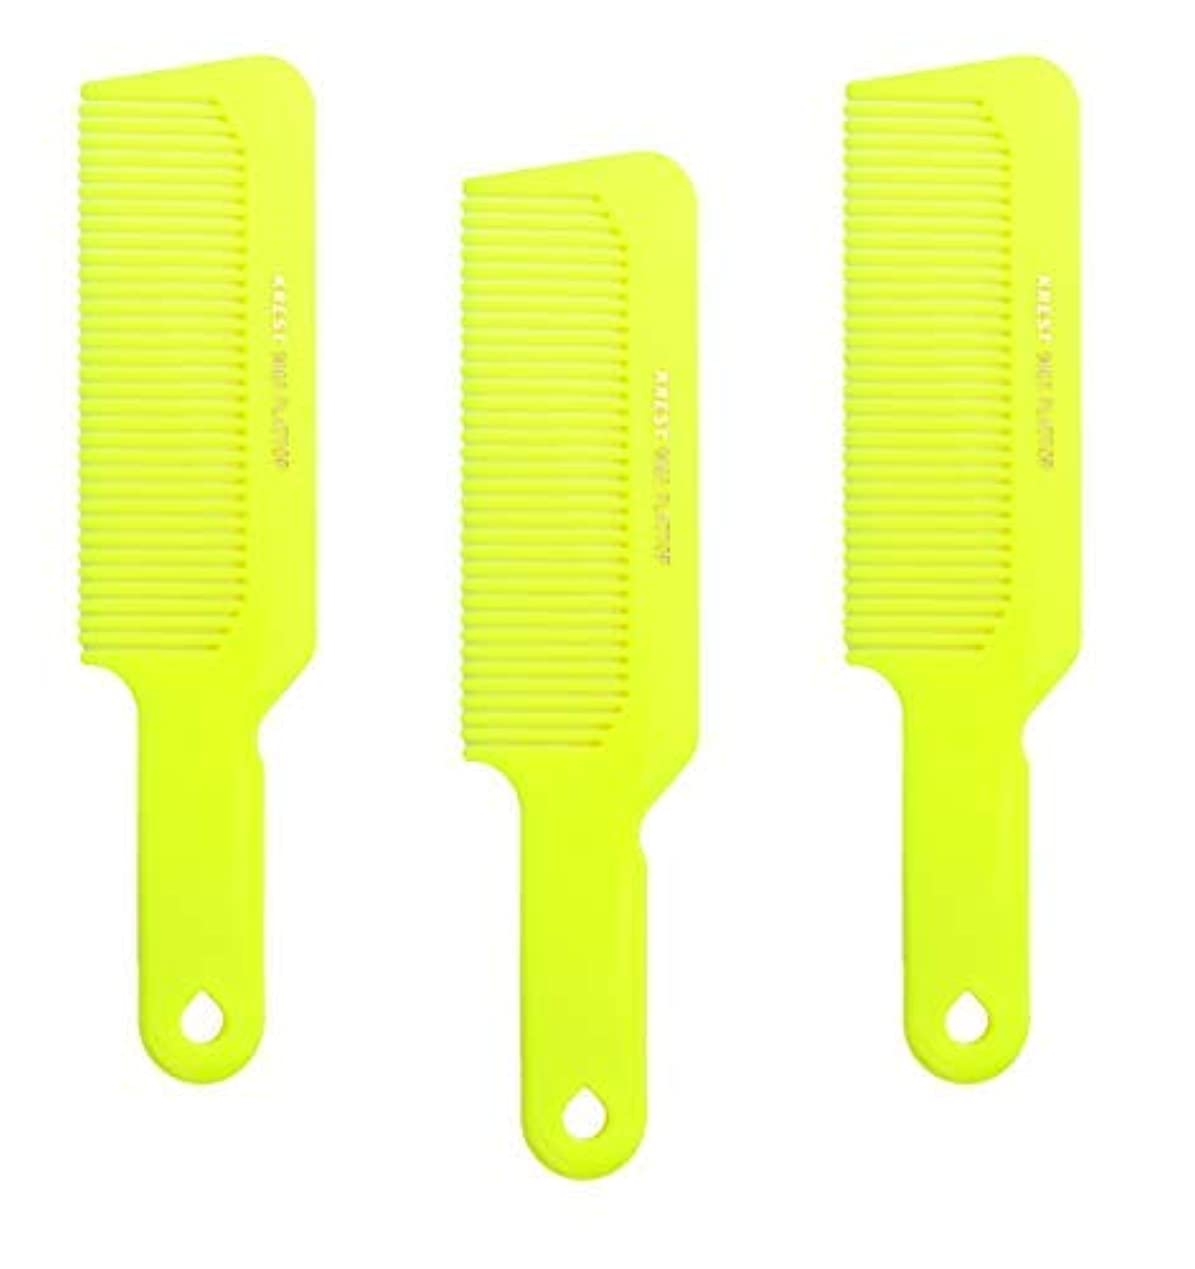 クロールどこアフリカ人Hair Comb 8-3/4 Flattop Hair Cutting Comb. Barbers Hairdresser Comb. Model 9001. 3 Combs (Neon Yellow) [並行輸入品]